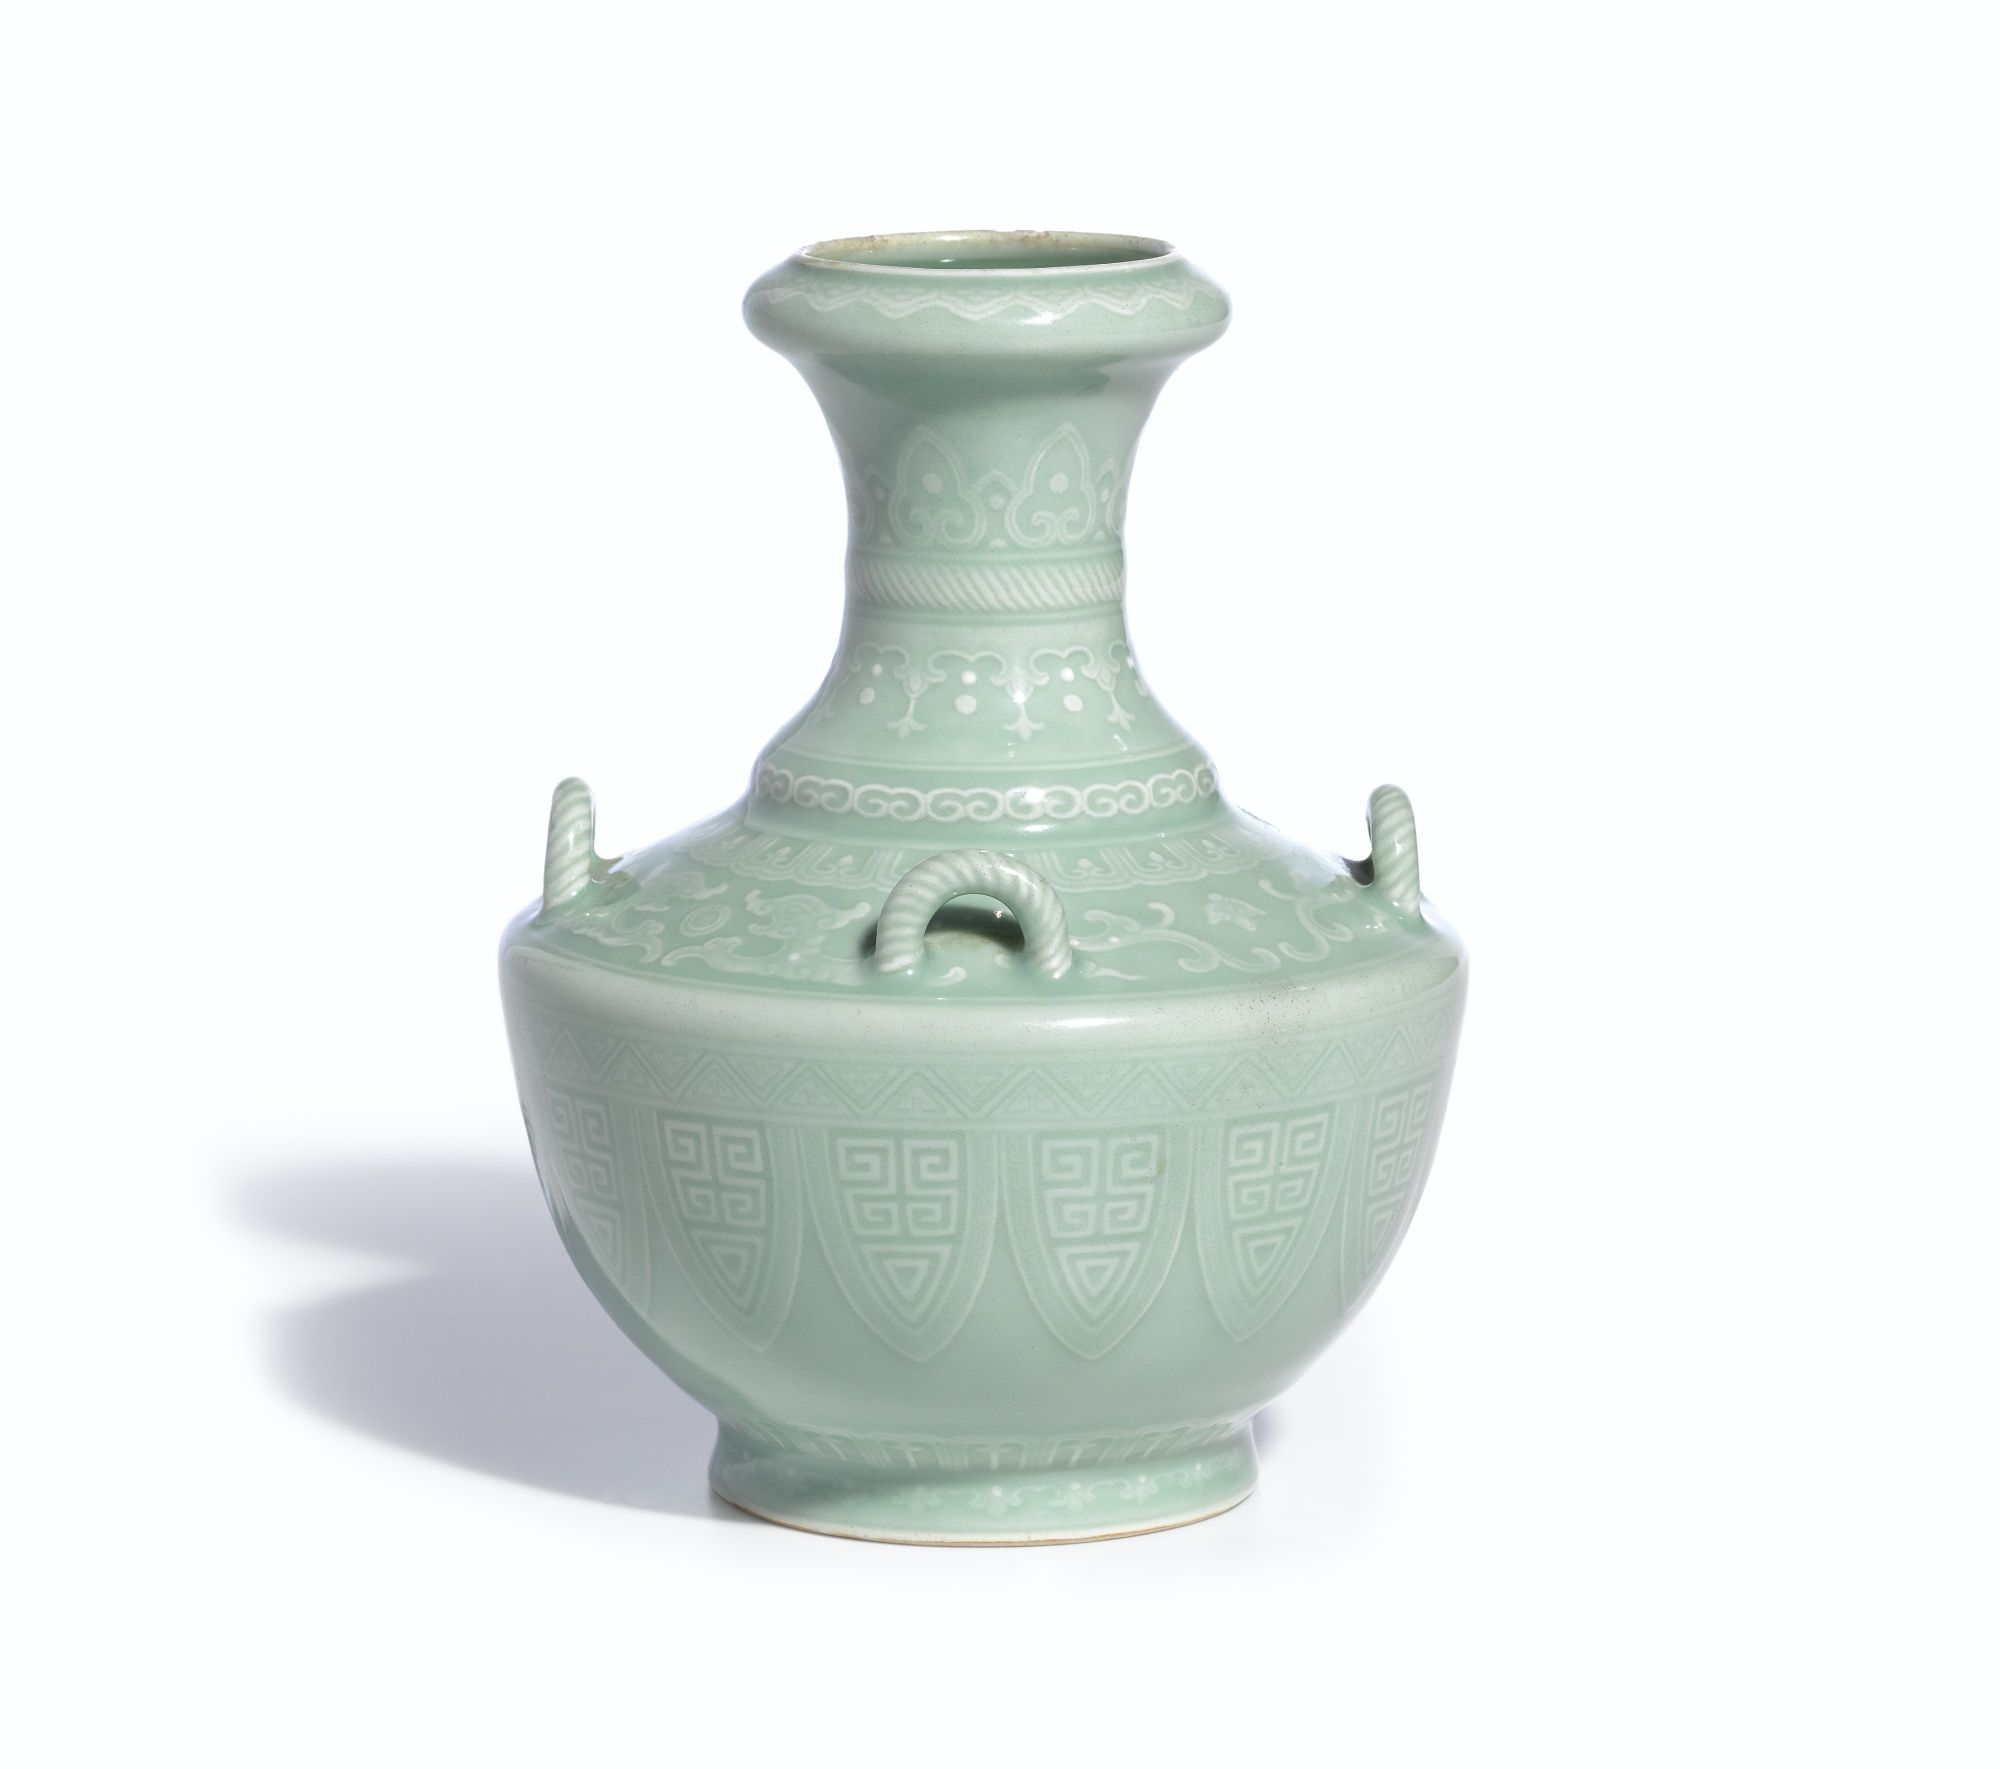 A small celadon-glazed handledvase, Sealmark and period of Qianlong